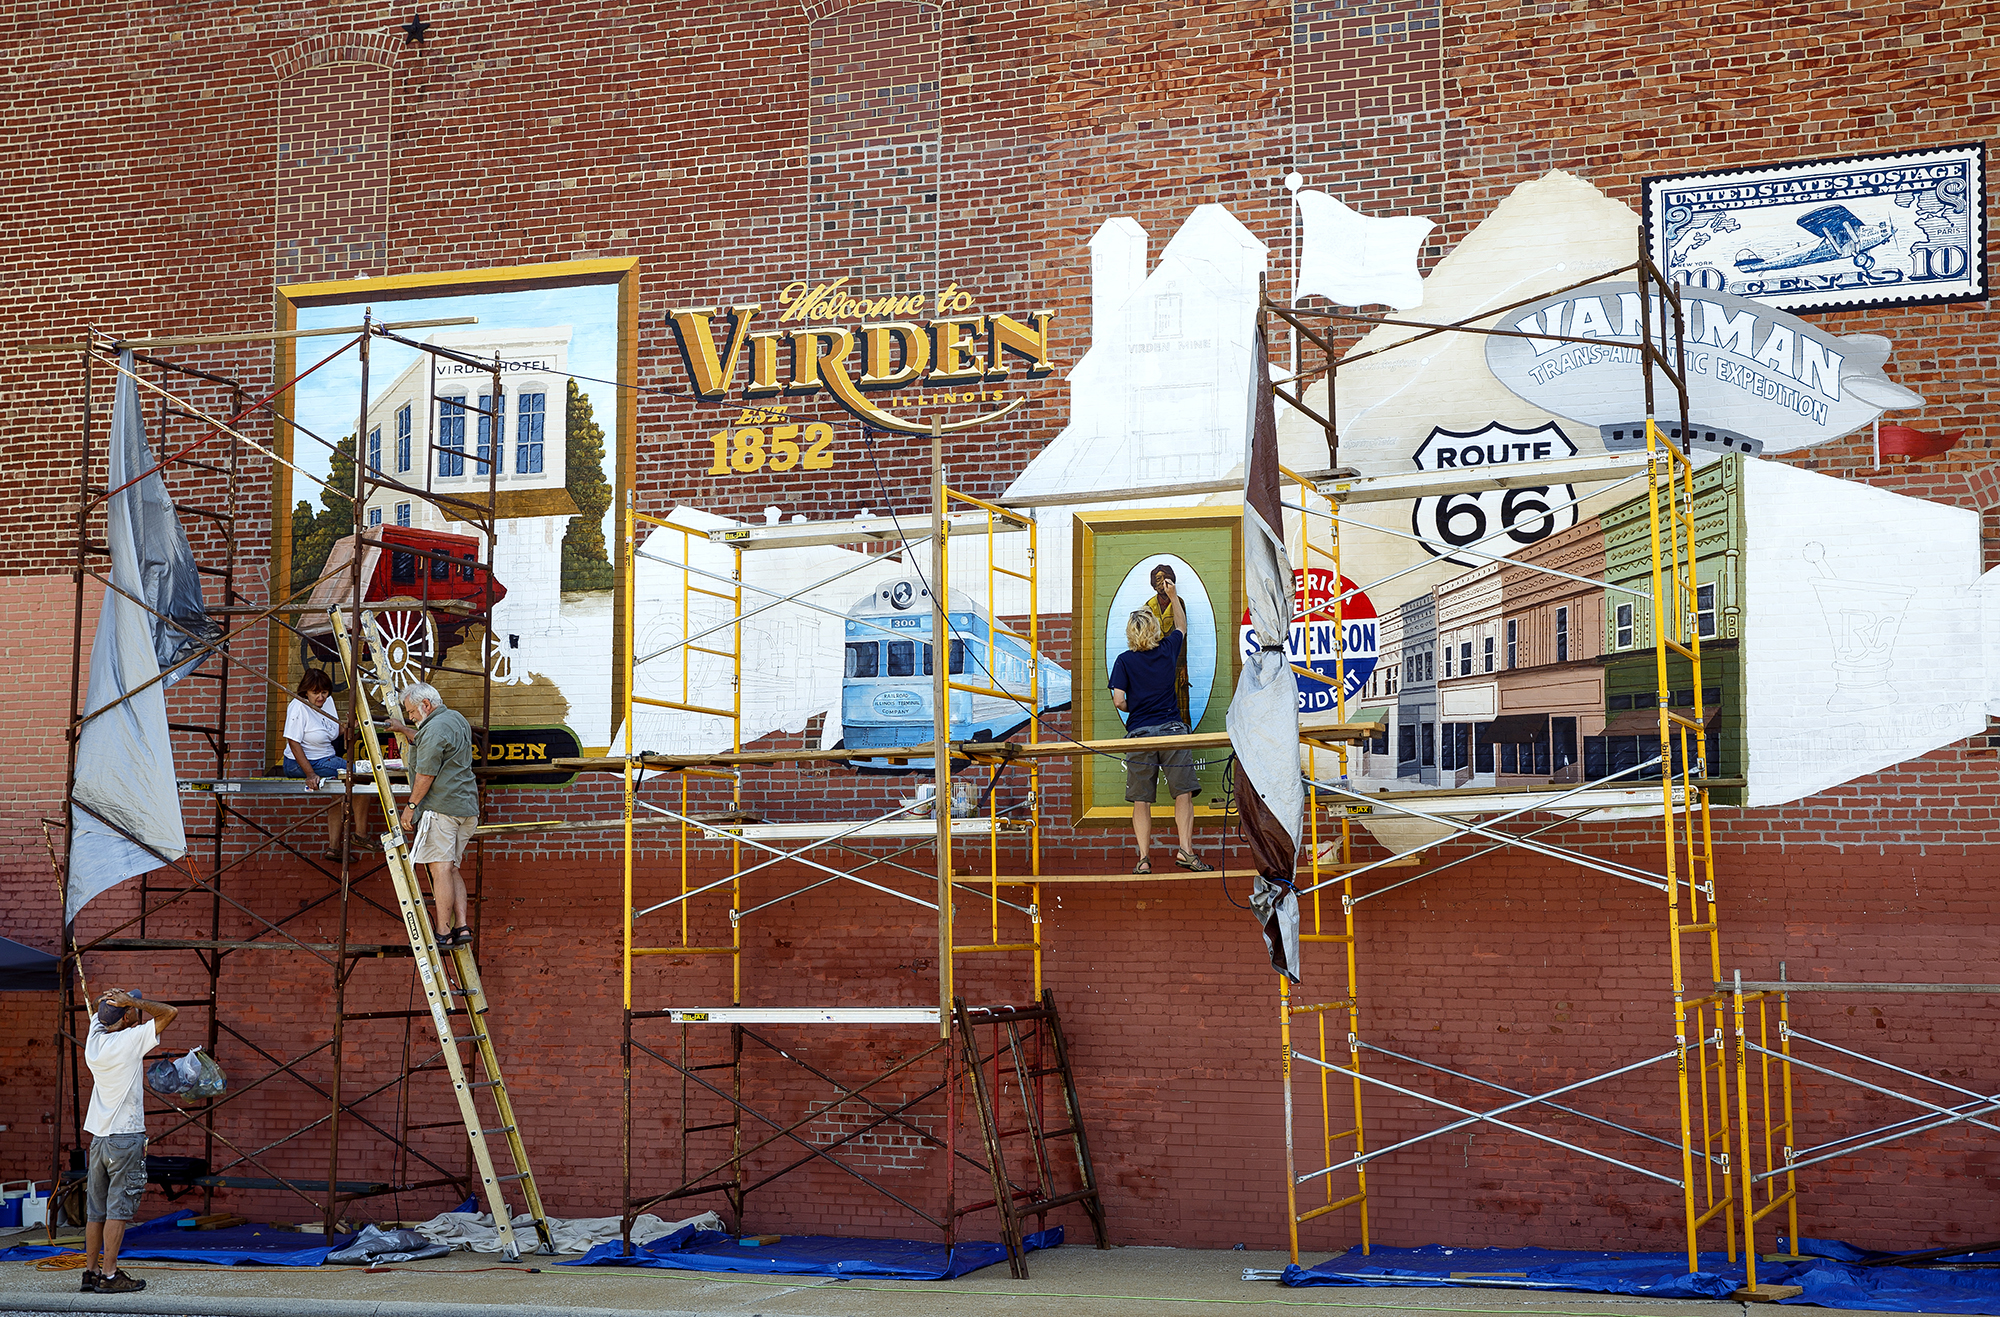 The Virden History Mural Committee raised $22,600 for the project, which measures 13 feet by 42 feet. From left, Bernie Gietl, Kathy and Tom Durham, and DL Whitlock-Gietl work on the mural Thursday, Aug. 2, 2018 on the side of the Sav-Mor Pharmacy building  in Virden, Ill. [Rich Saal/The State Journal-Register]